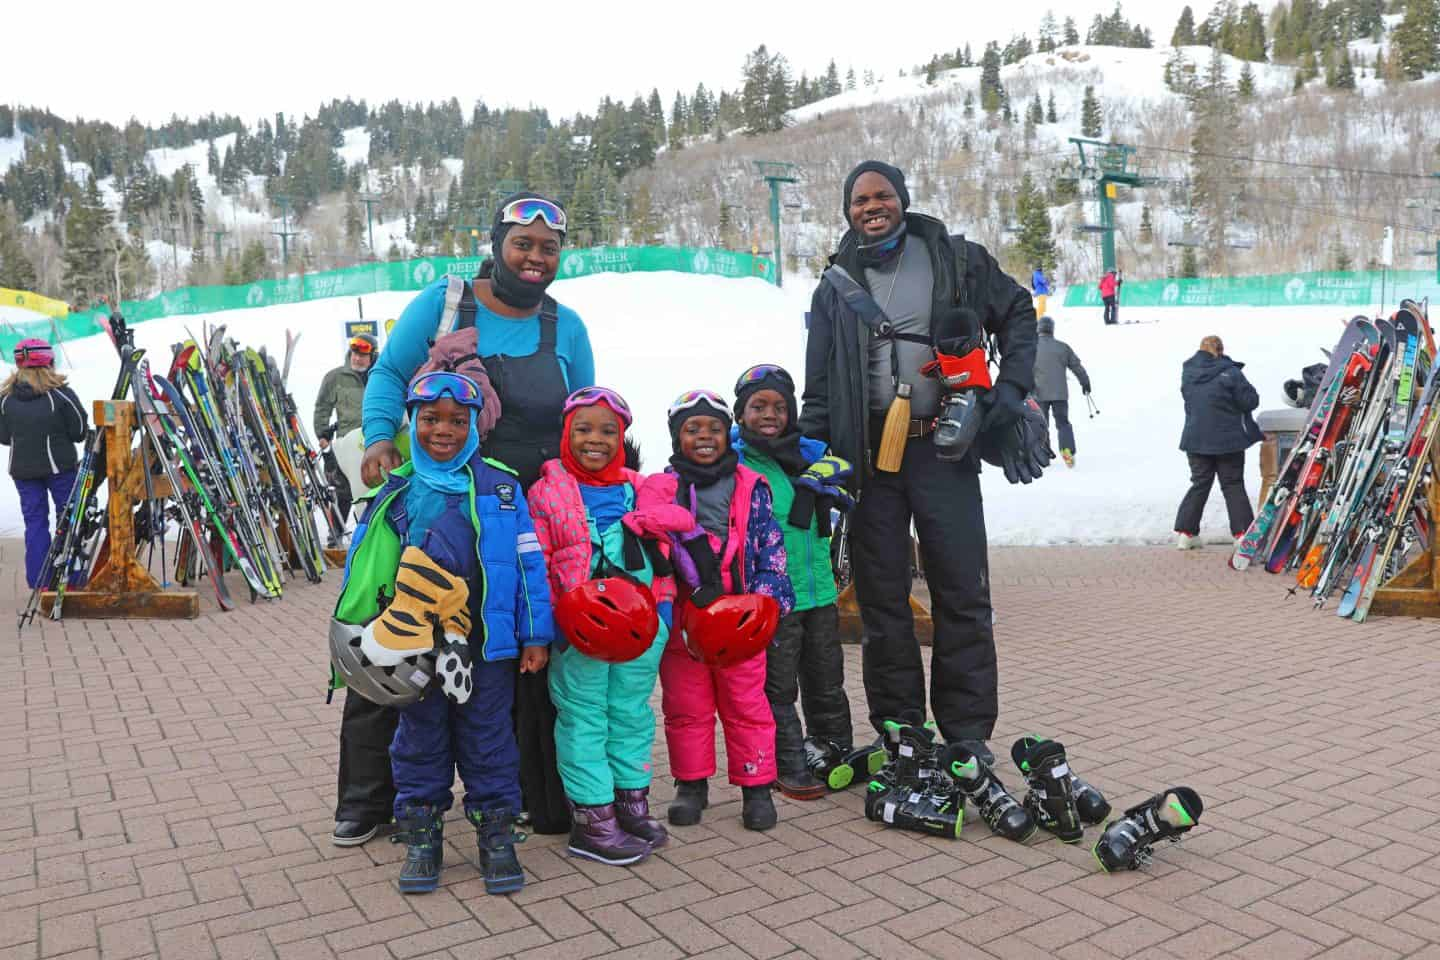 black family sking in park city utah